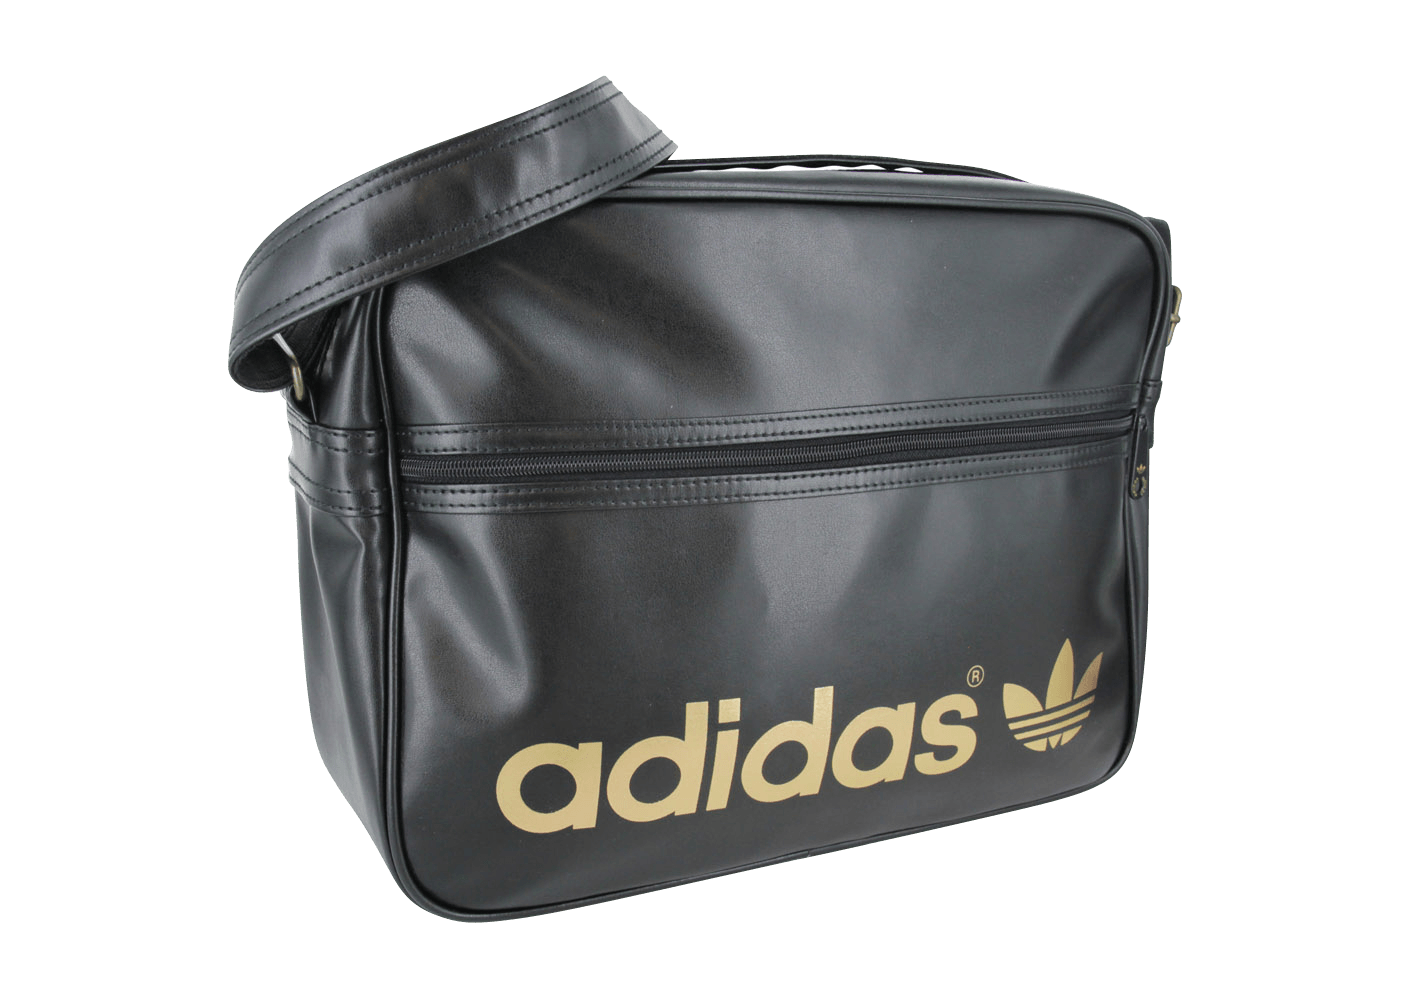 24fd76ab2b Remise commerciale adidas sac,Convertible 3-Stripes Duffel Bag Medium  Baskets - expertin-champagne-ardenne.fr